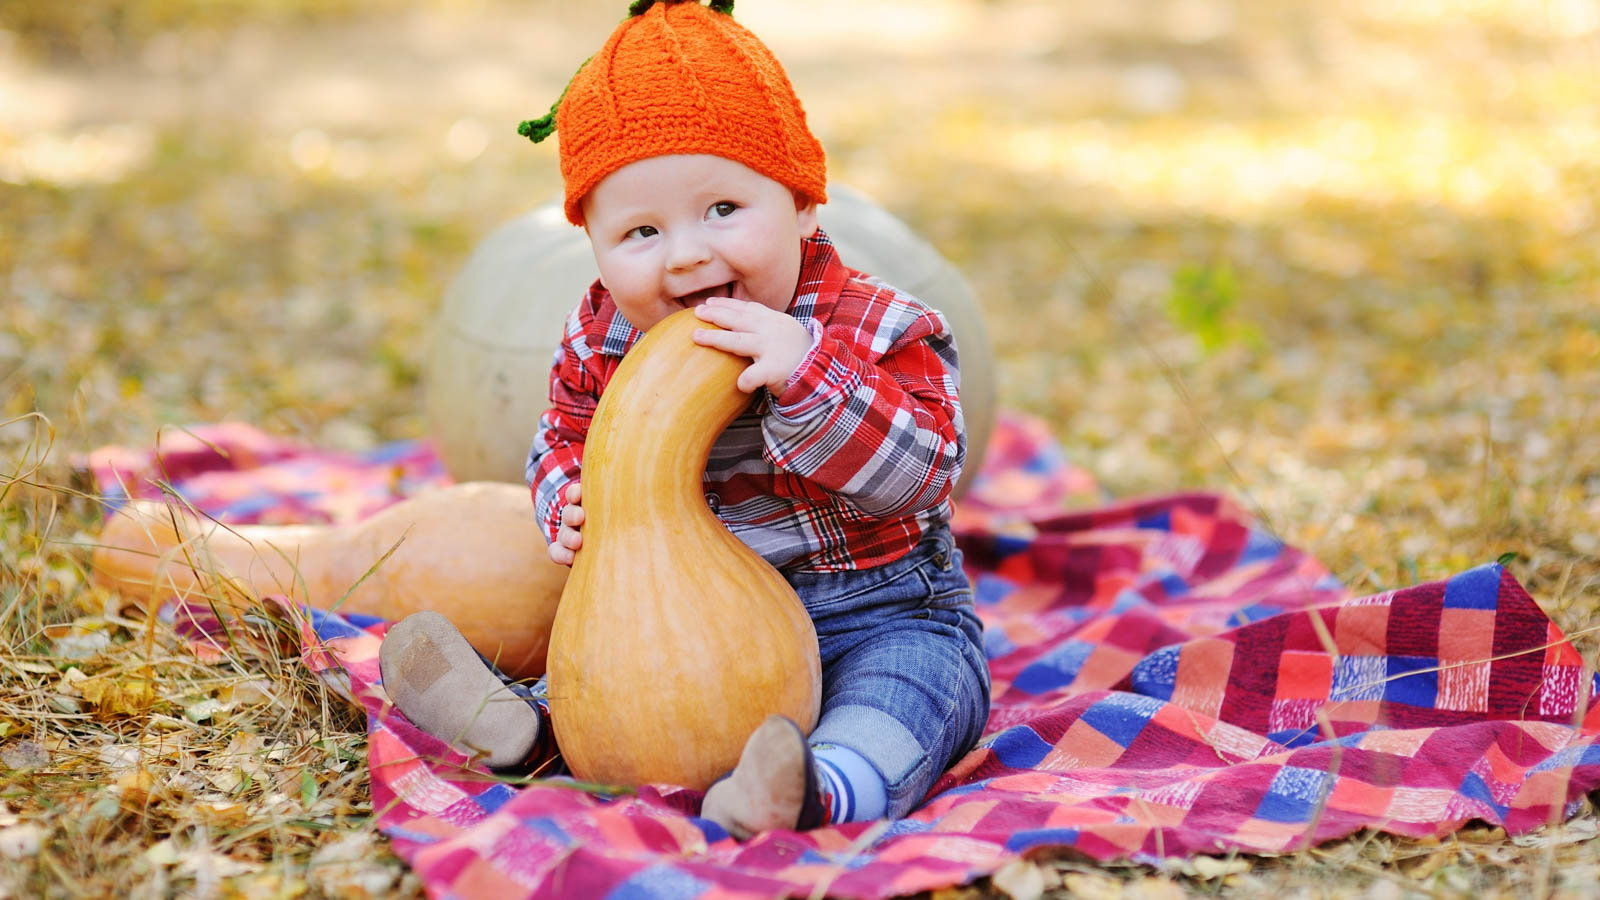 baby with a pumpkin in the park